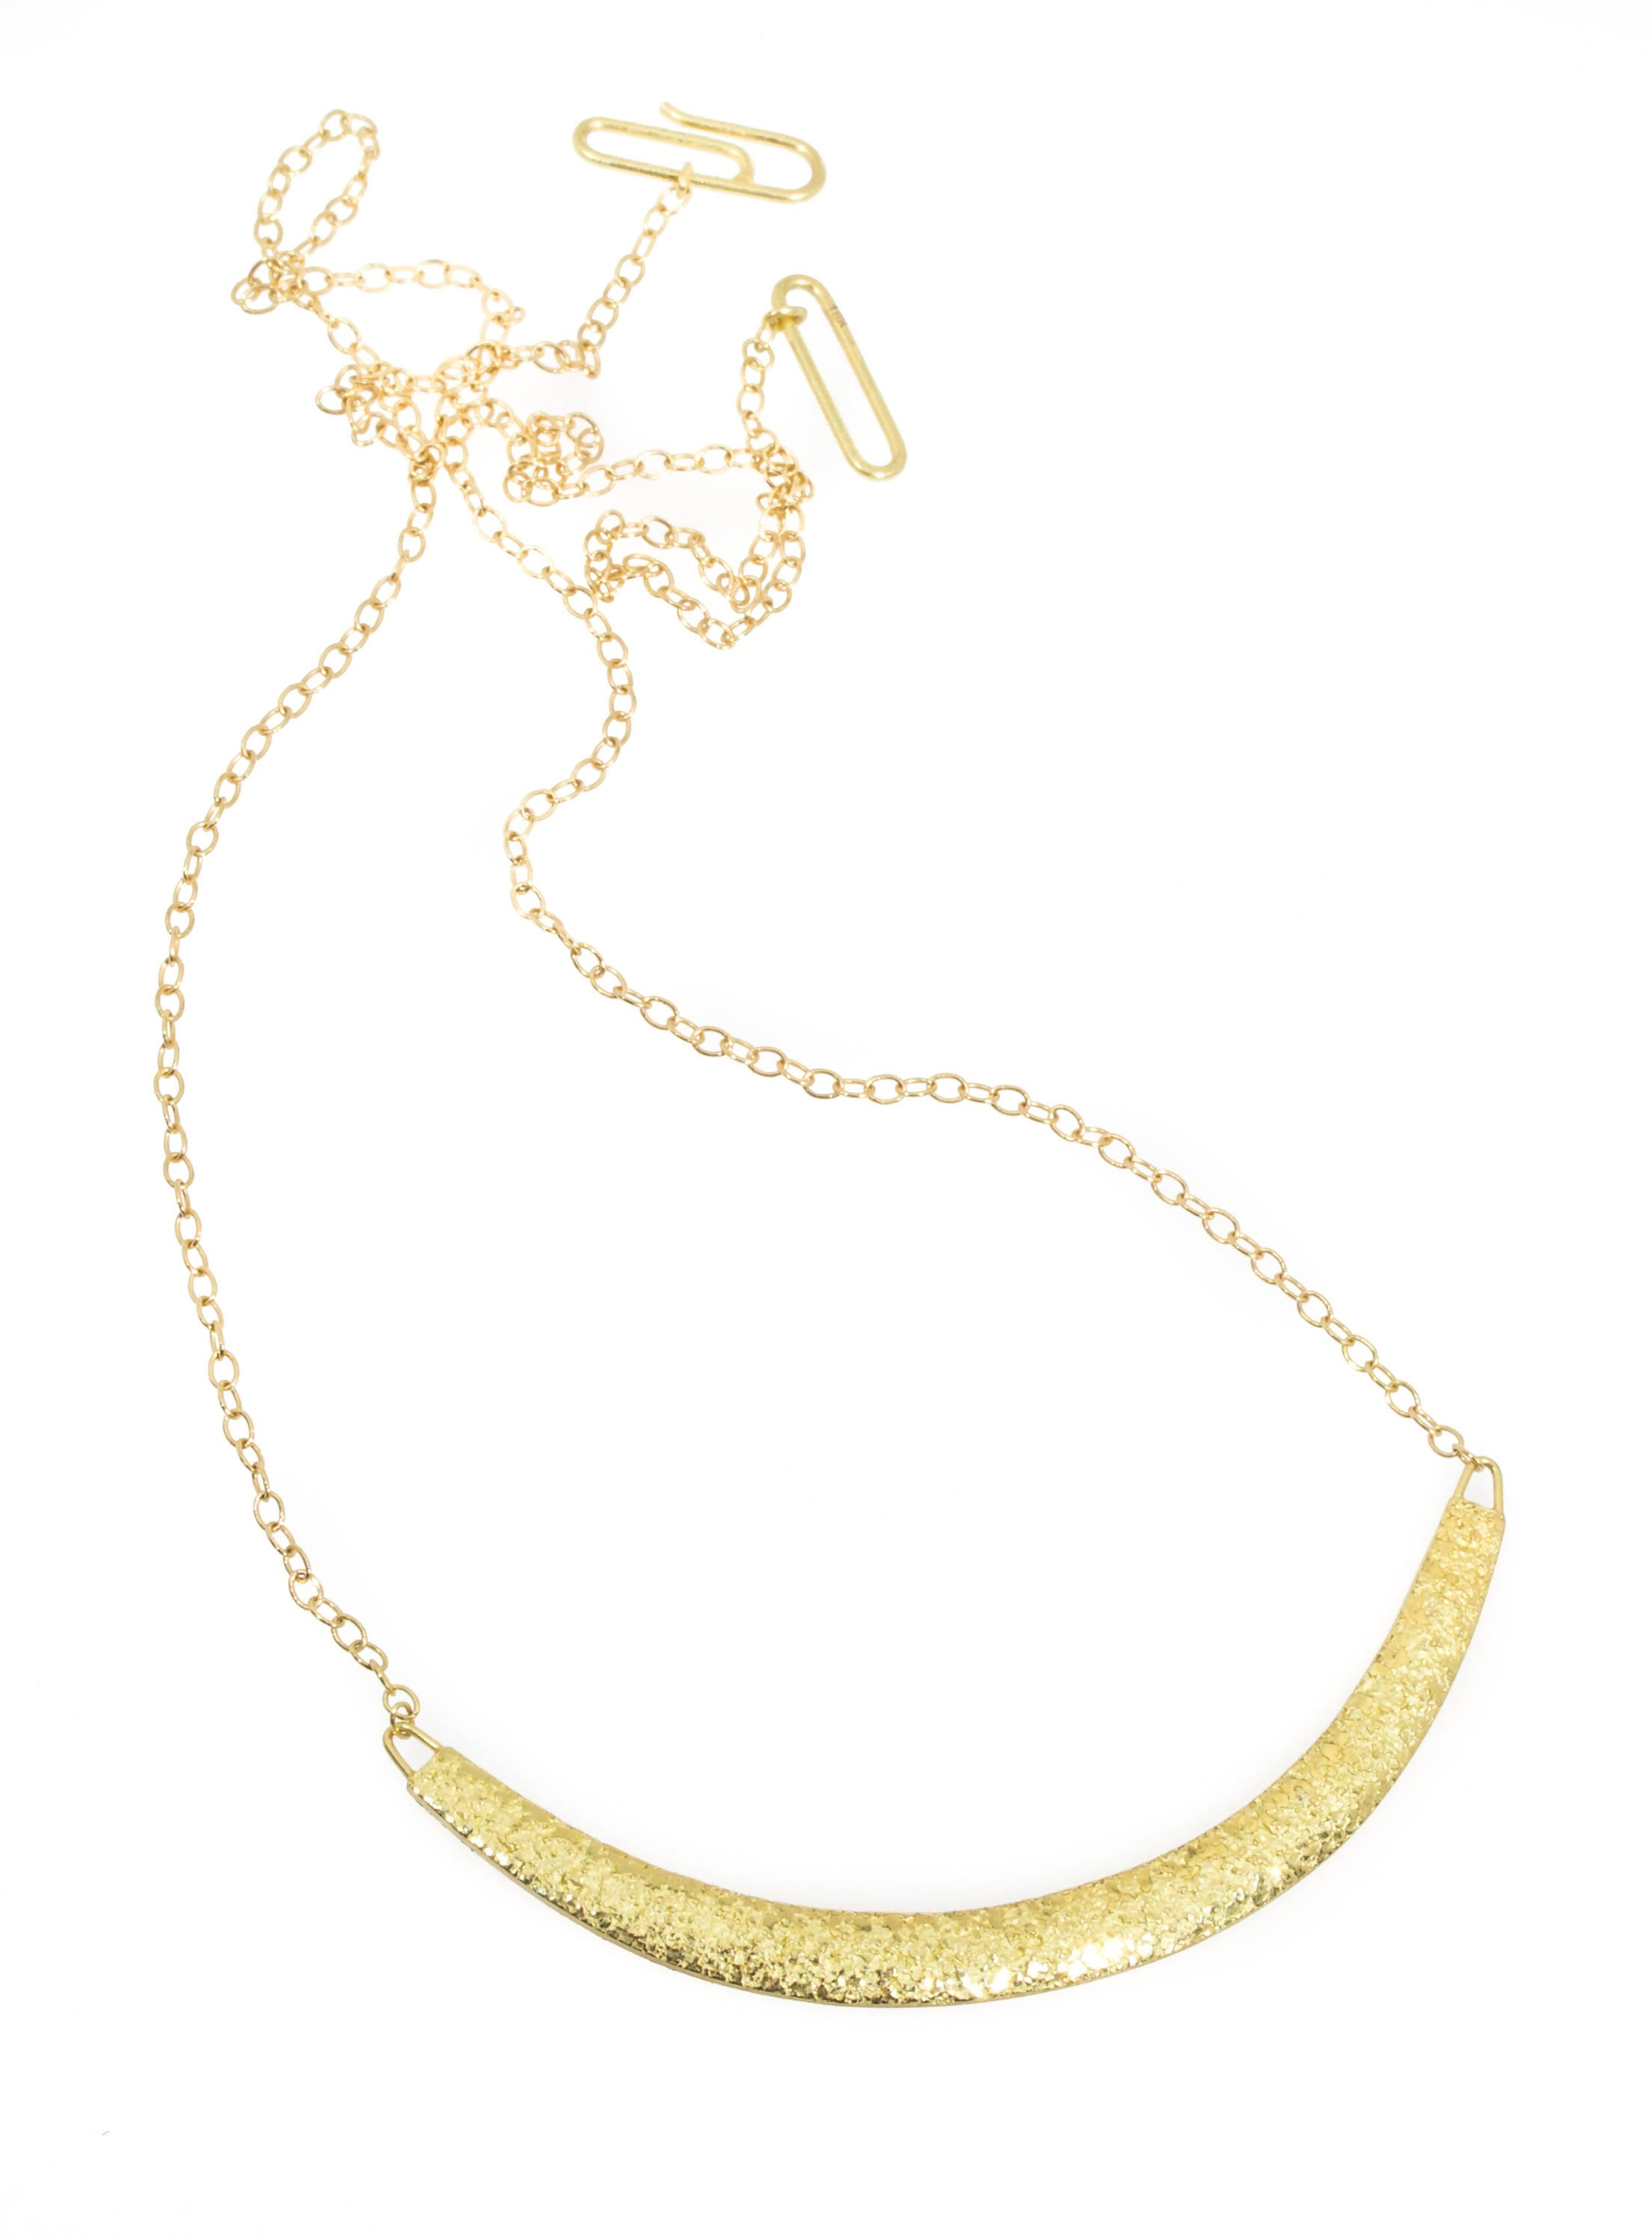 Compressed Sand Bar Necklace in solid 18k gold